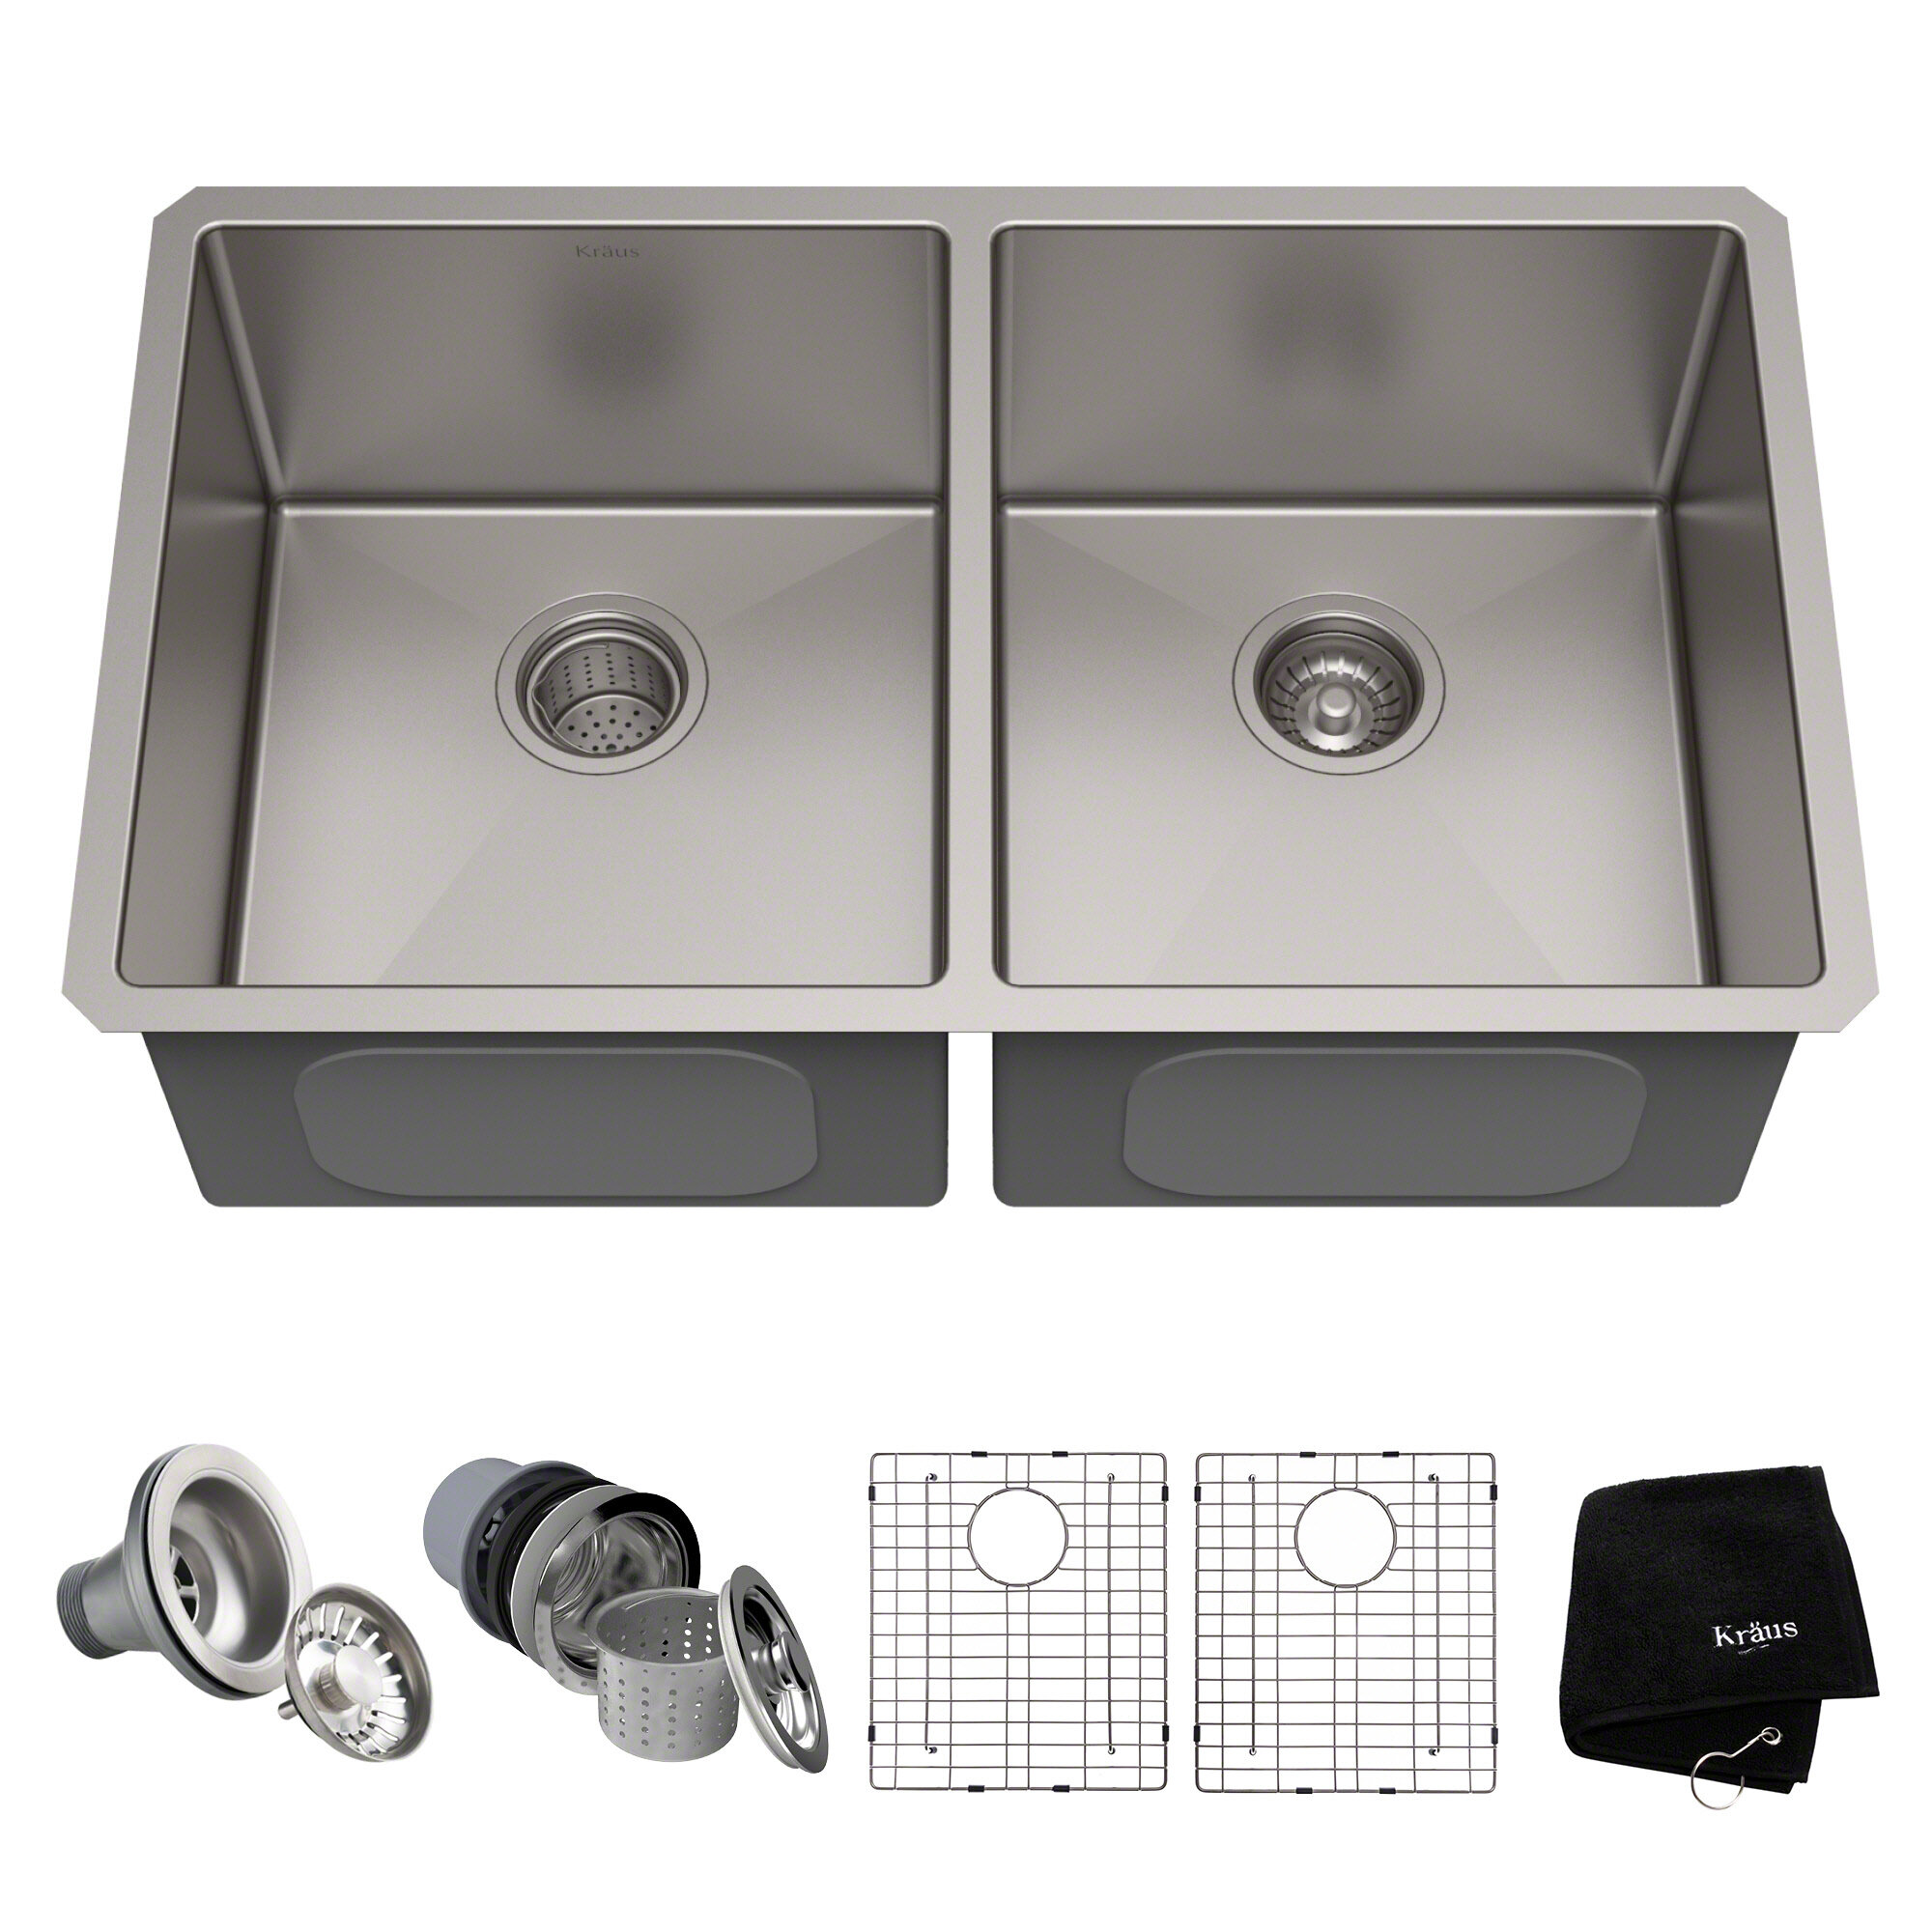 33  L x 19  W Double Basin Undermount Kitchen Sink with Drain Assembly u0026 Reviews | AllModern  sc 1 st  AllModern & 33